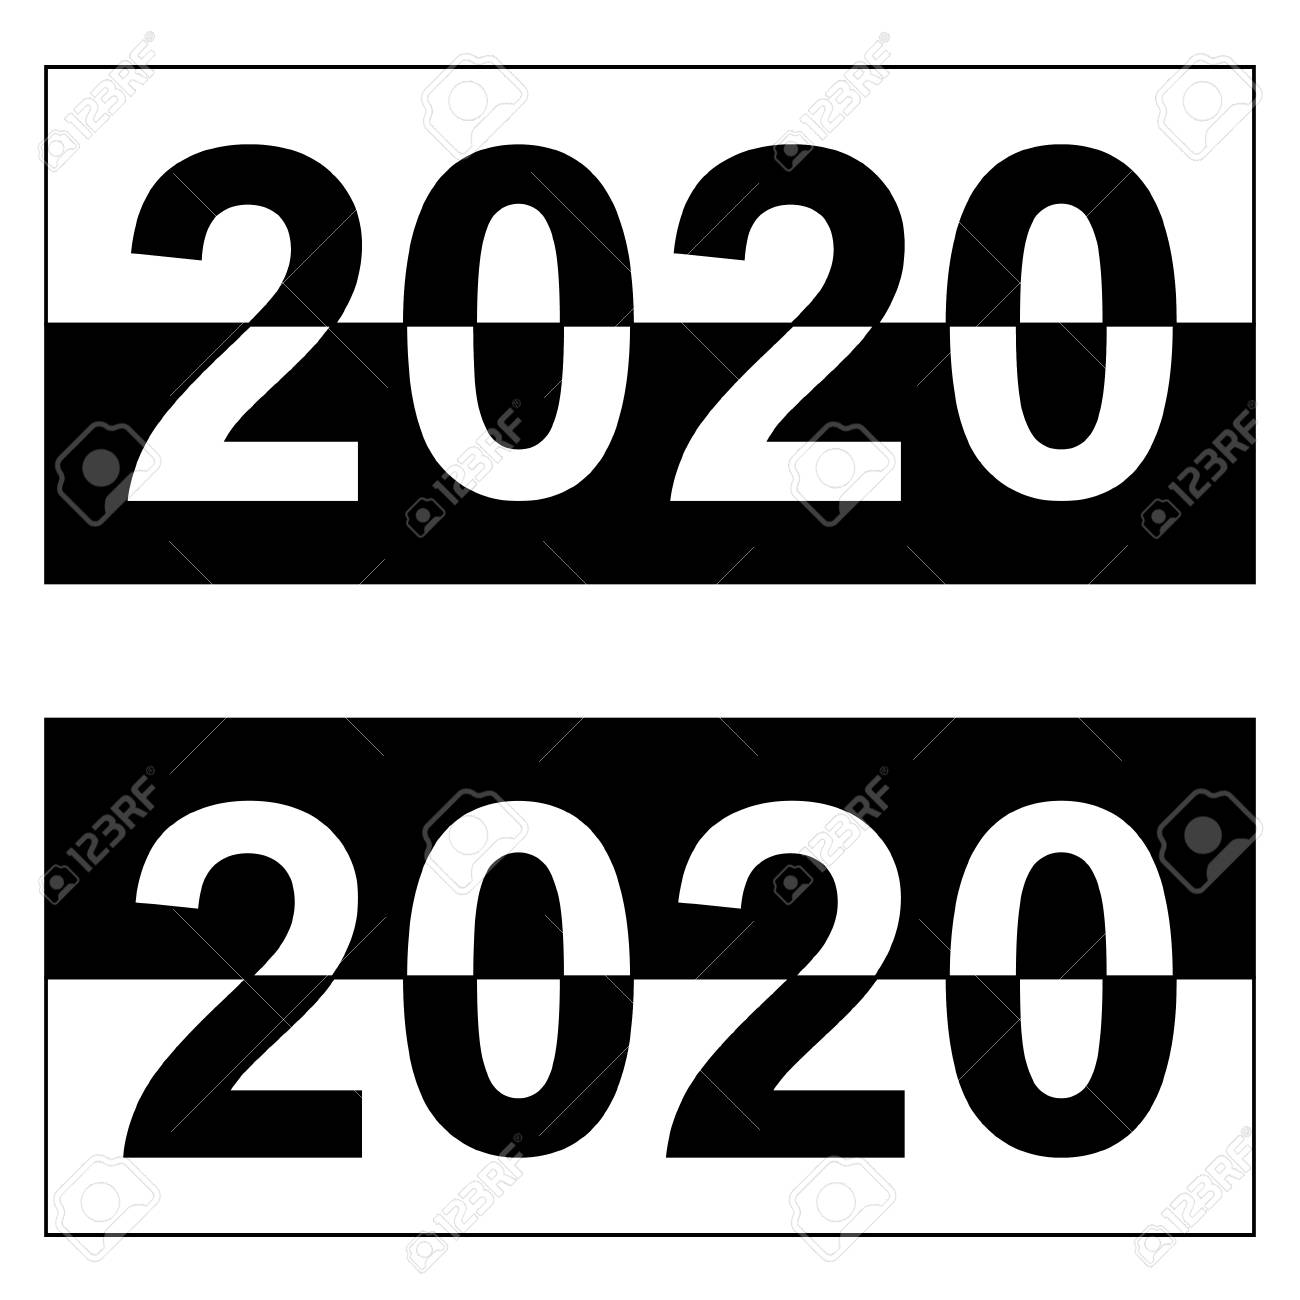 A brand new year 2020 dating